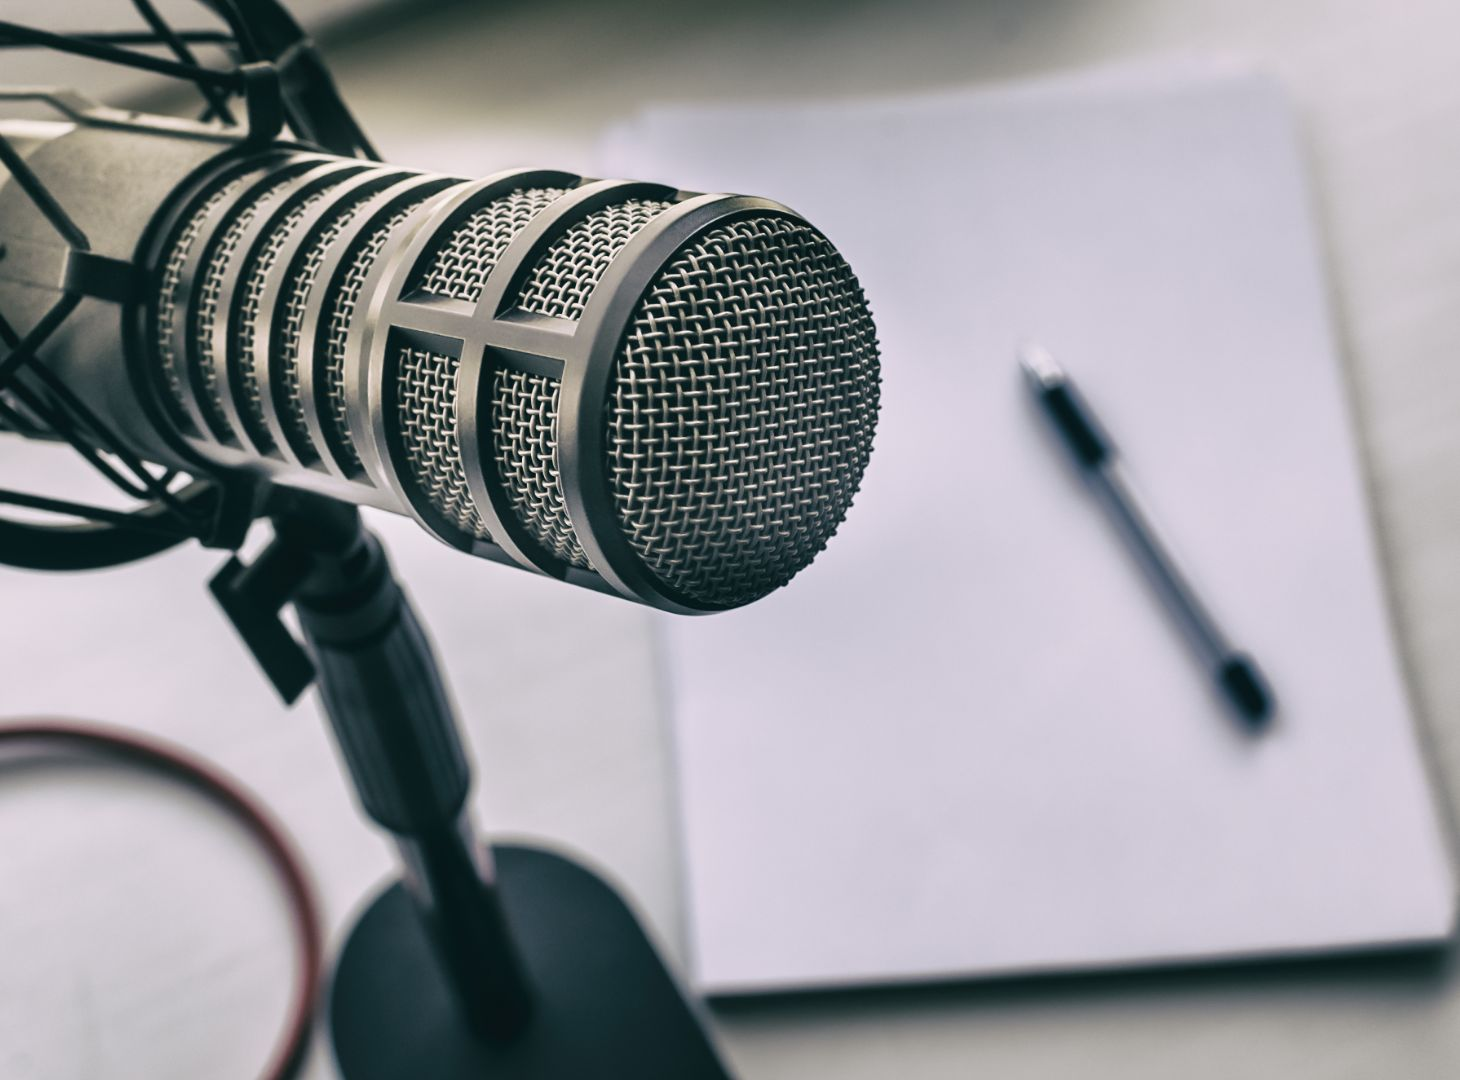 Image of a microphone on a table next to a pen and paper